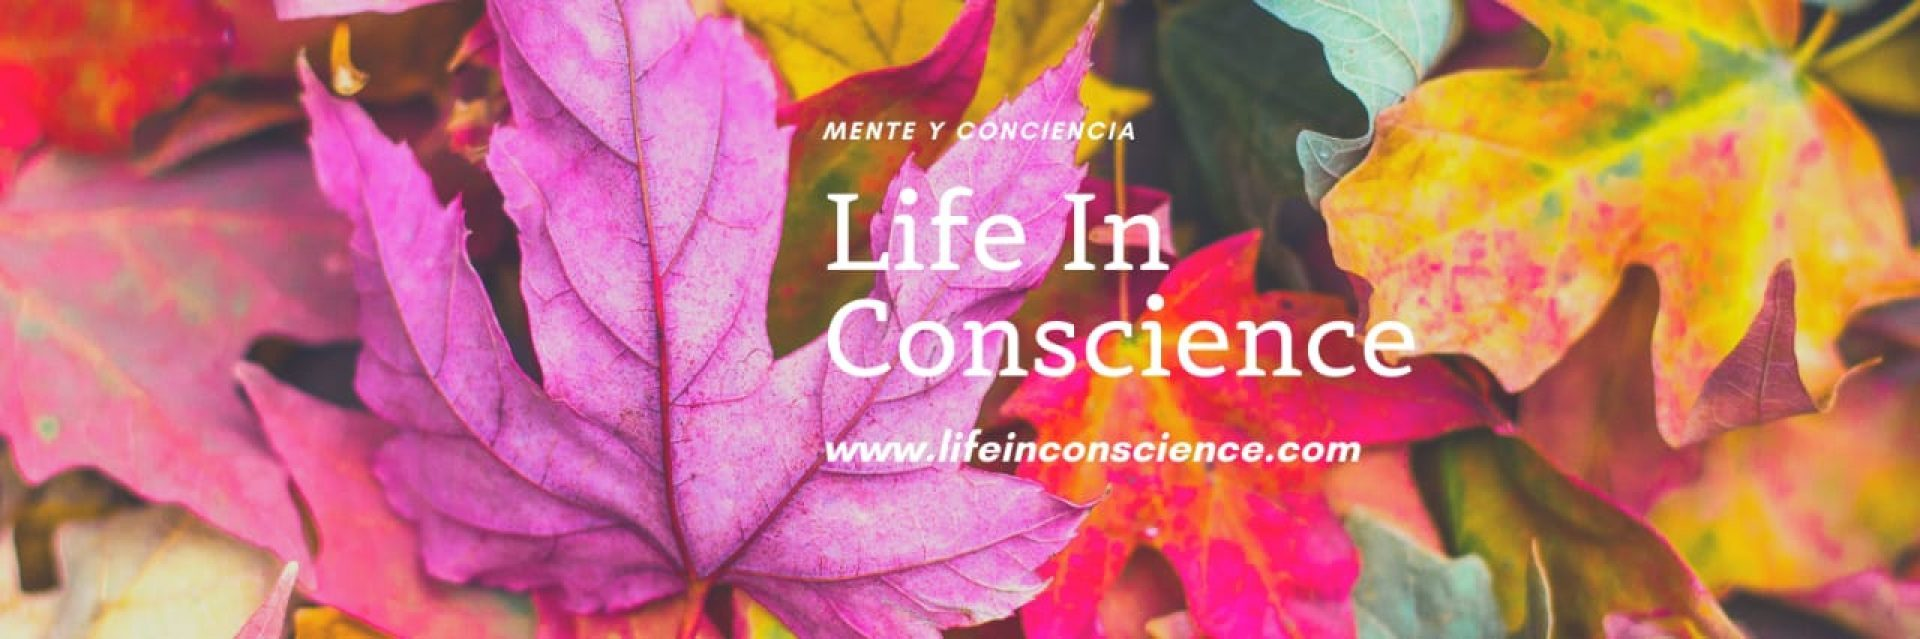 LIFE IN CONSCIENCE